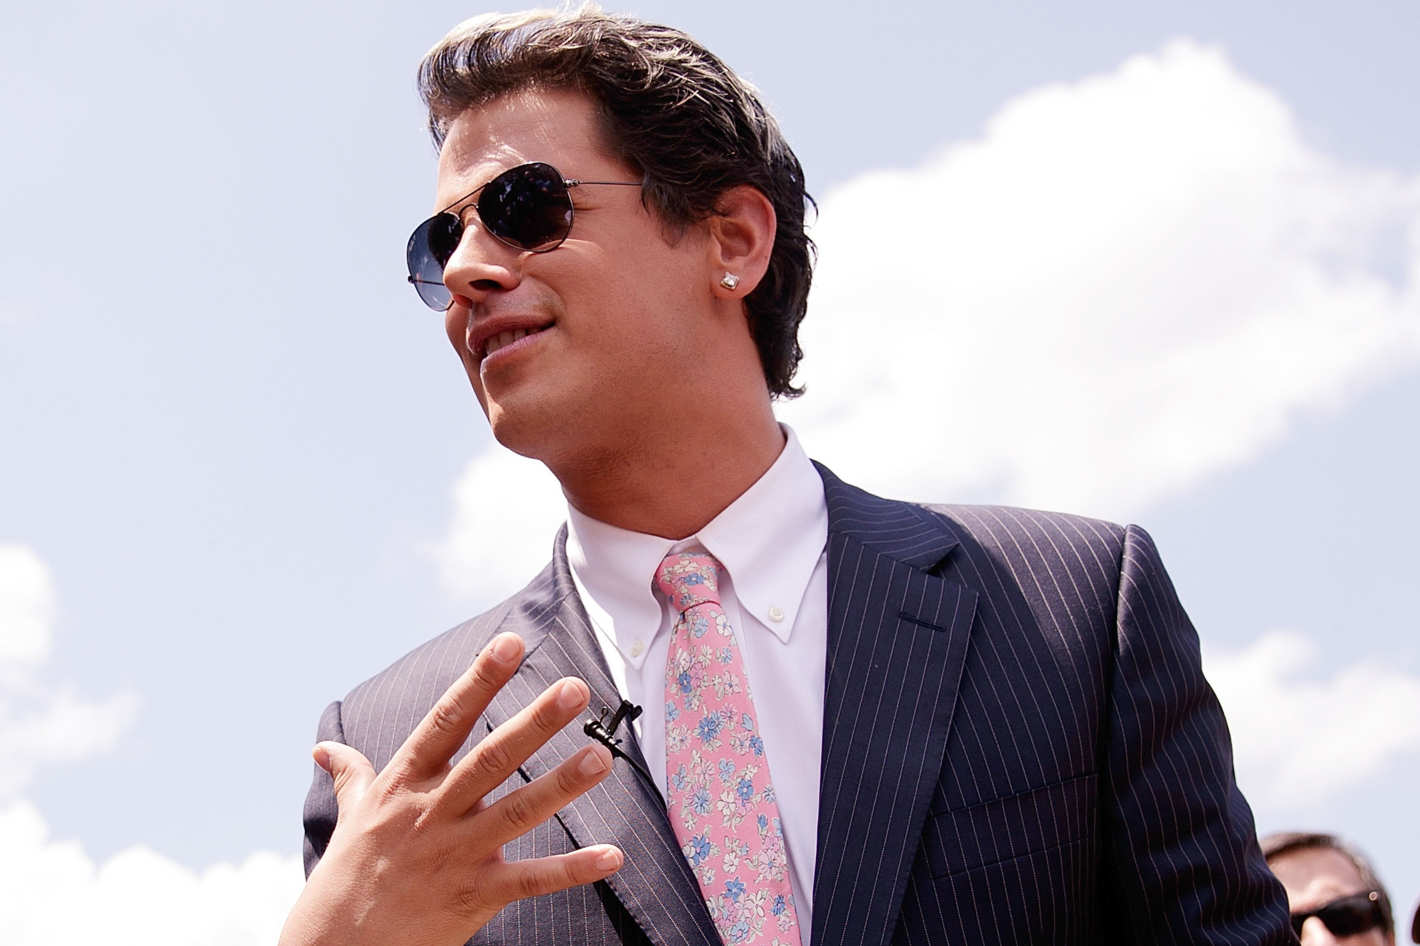 Milo Yiannopoulos is a British  media personality  associated with the political  alt-right  and a former senior editor for  Breitbart News .